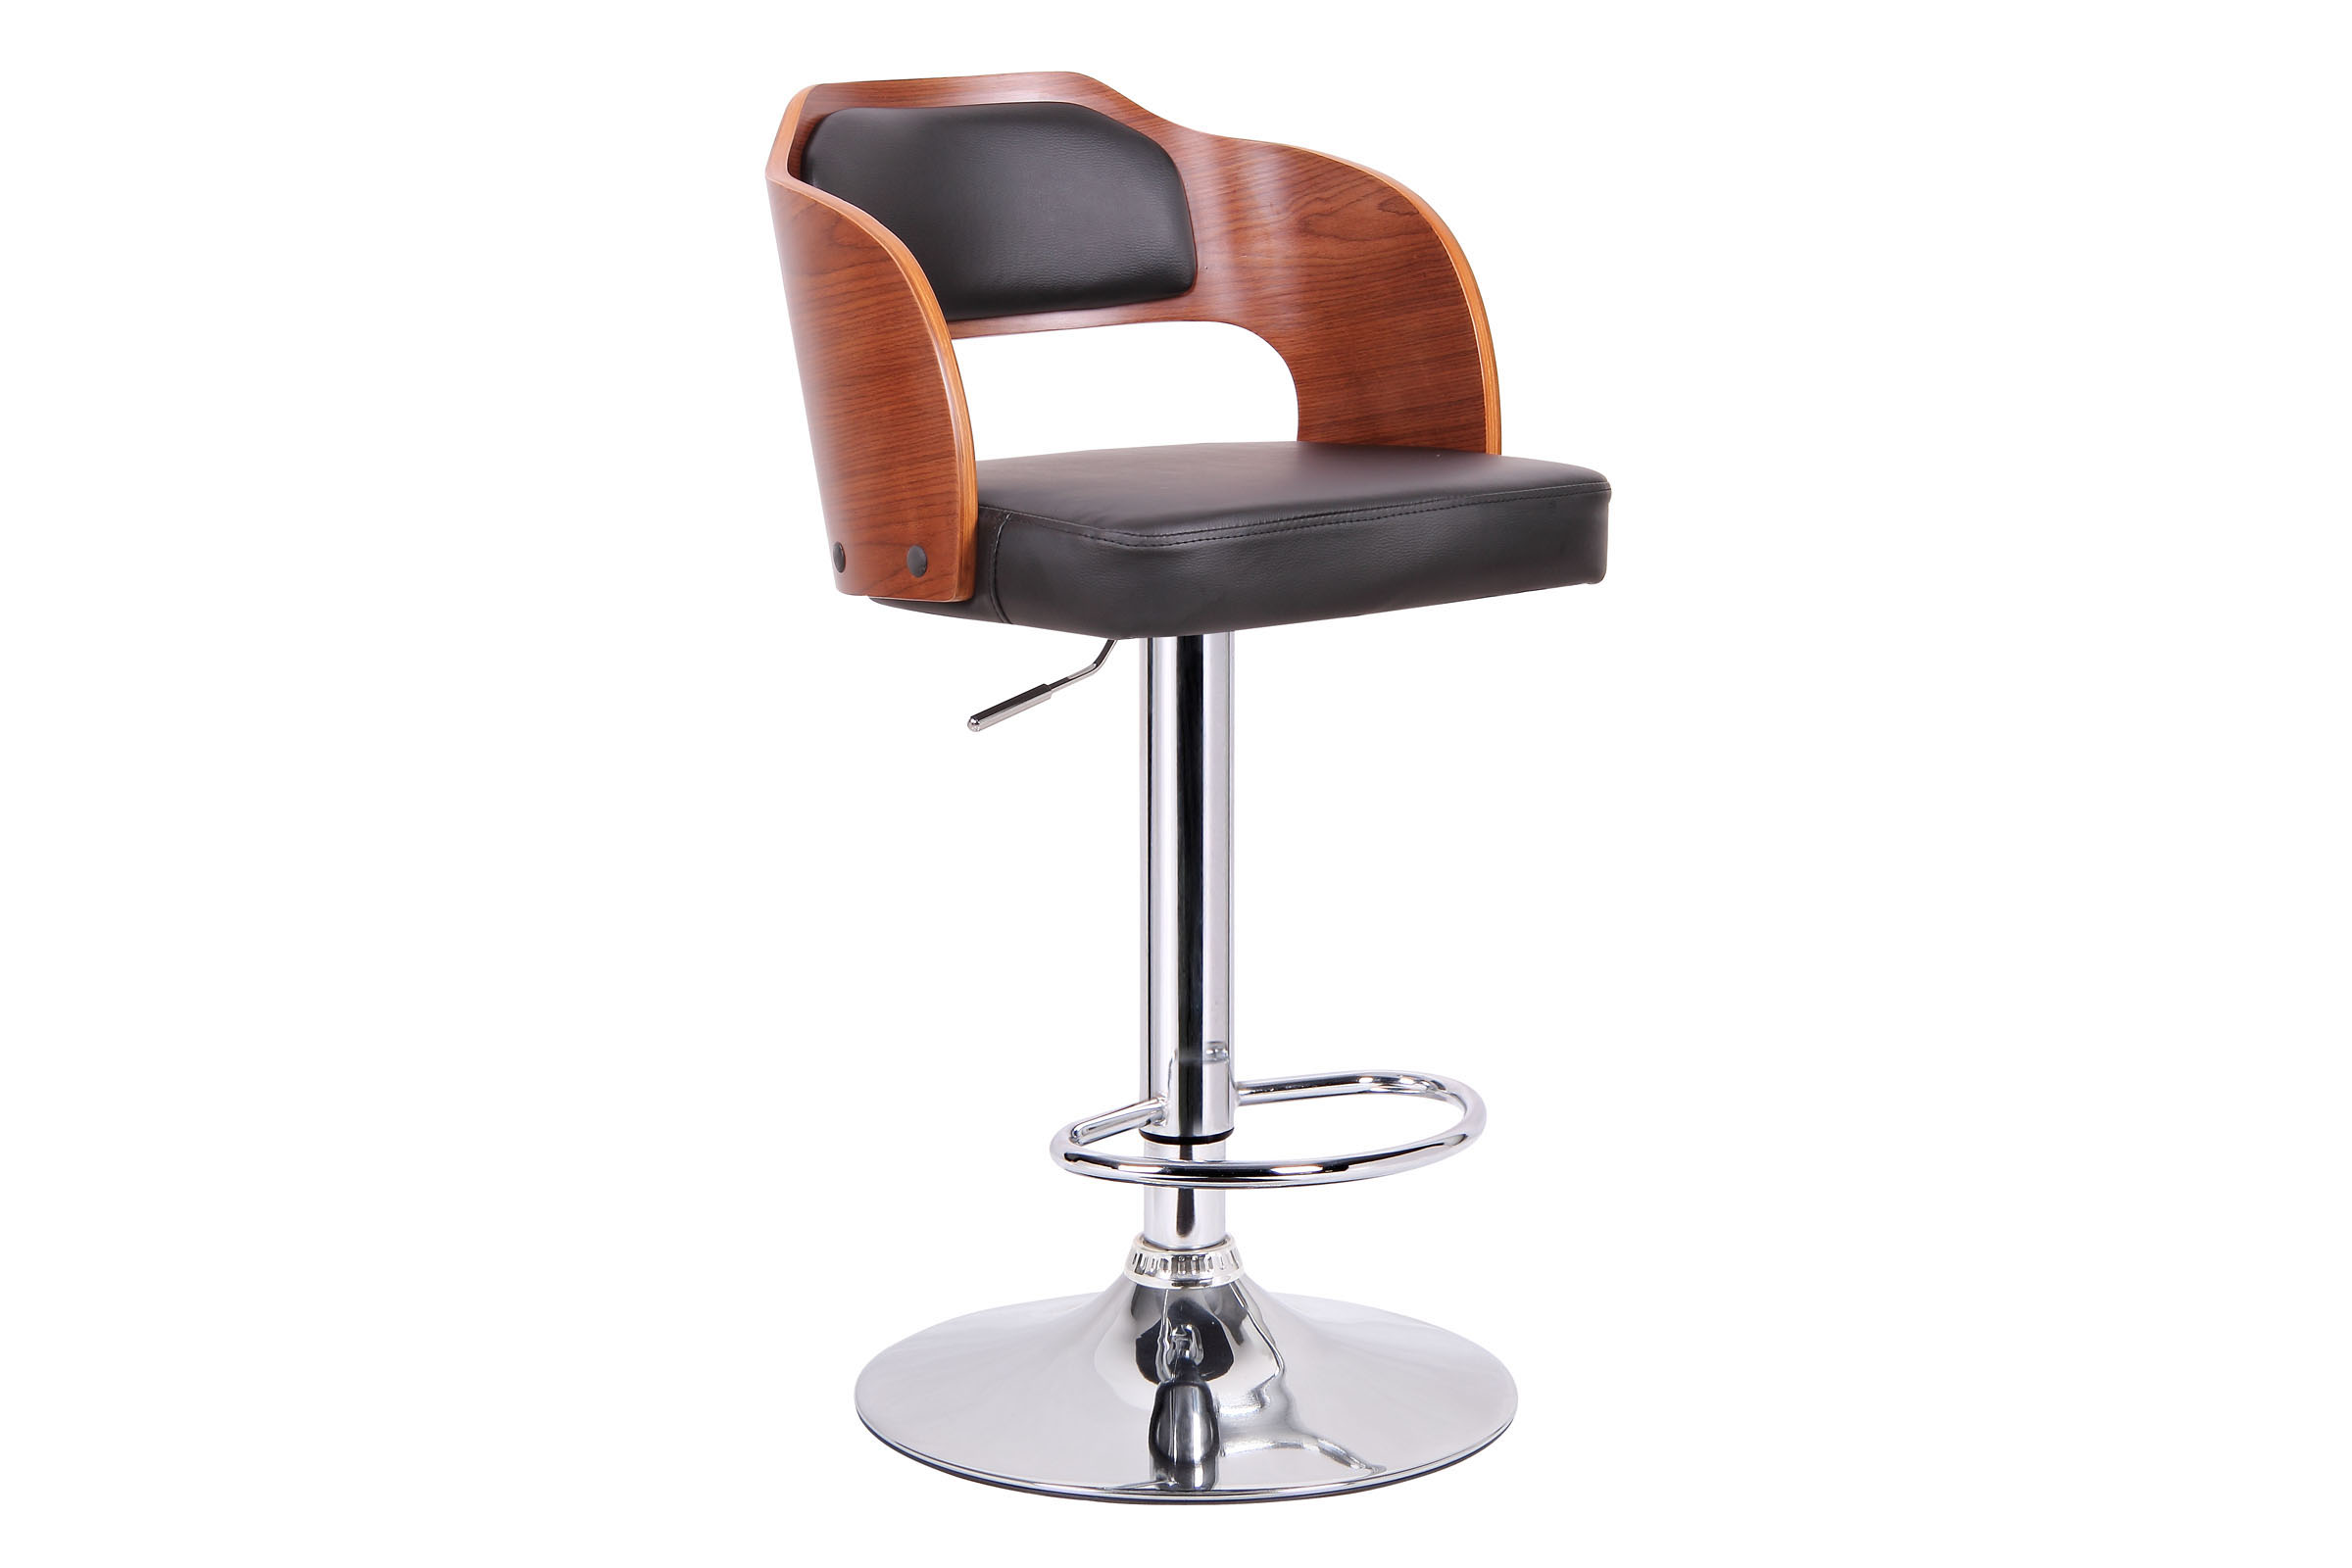 Baxton Studio Sitka Walnut and Black Modern Bar Stool Sitka Walnut and Black Modern Bar Stool,IESD-2017-2-walnut/black-PSTL,compare Sitka Walnut and Black Modern Bar Stool,best price on Sitka Walnut and Black Modern Bar Stool,discount Sitka Walnut and Black Modern Bar Stool,cheap  Sitka Walnut and Black Modern Bar Stool